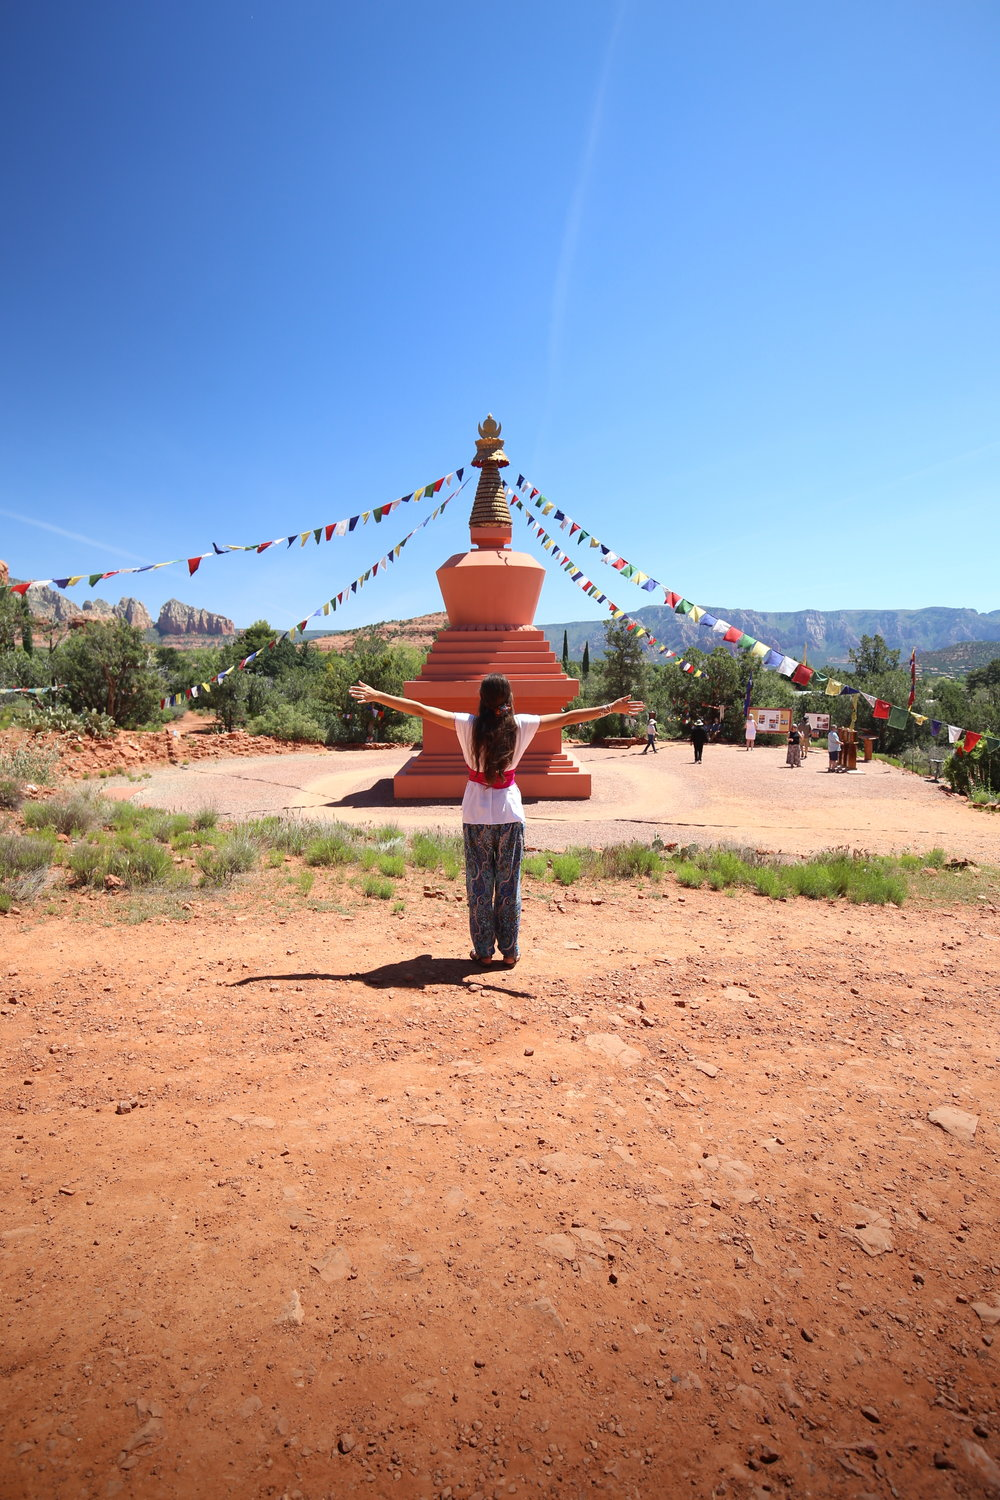 Sun salutations at the Peace Stupa of Sedona.